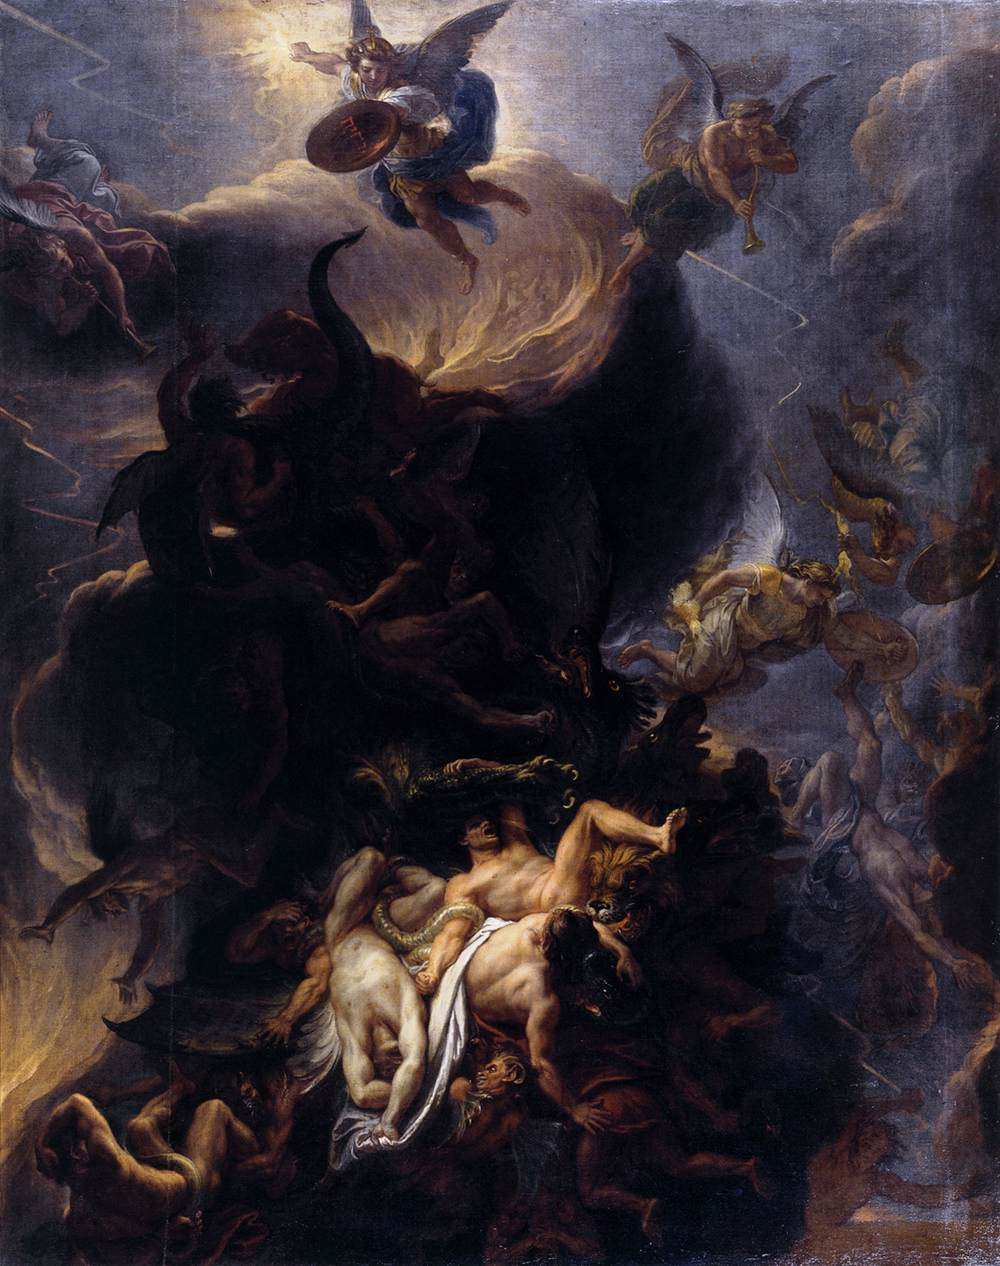 Charles_Le_Brun_-_The_Fall_of_the_Rebel_Angels_-_WGA12546